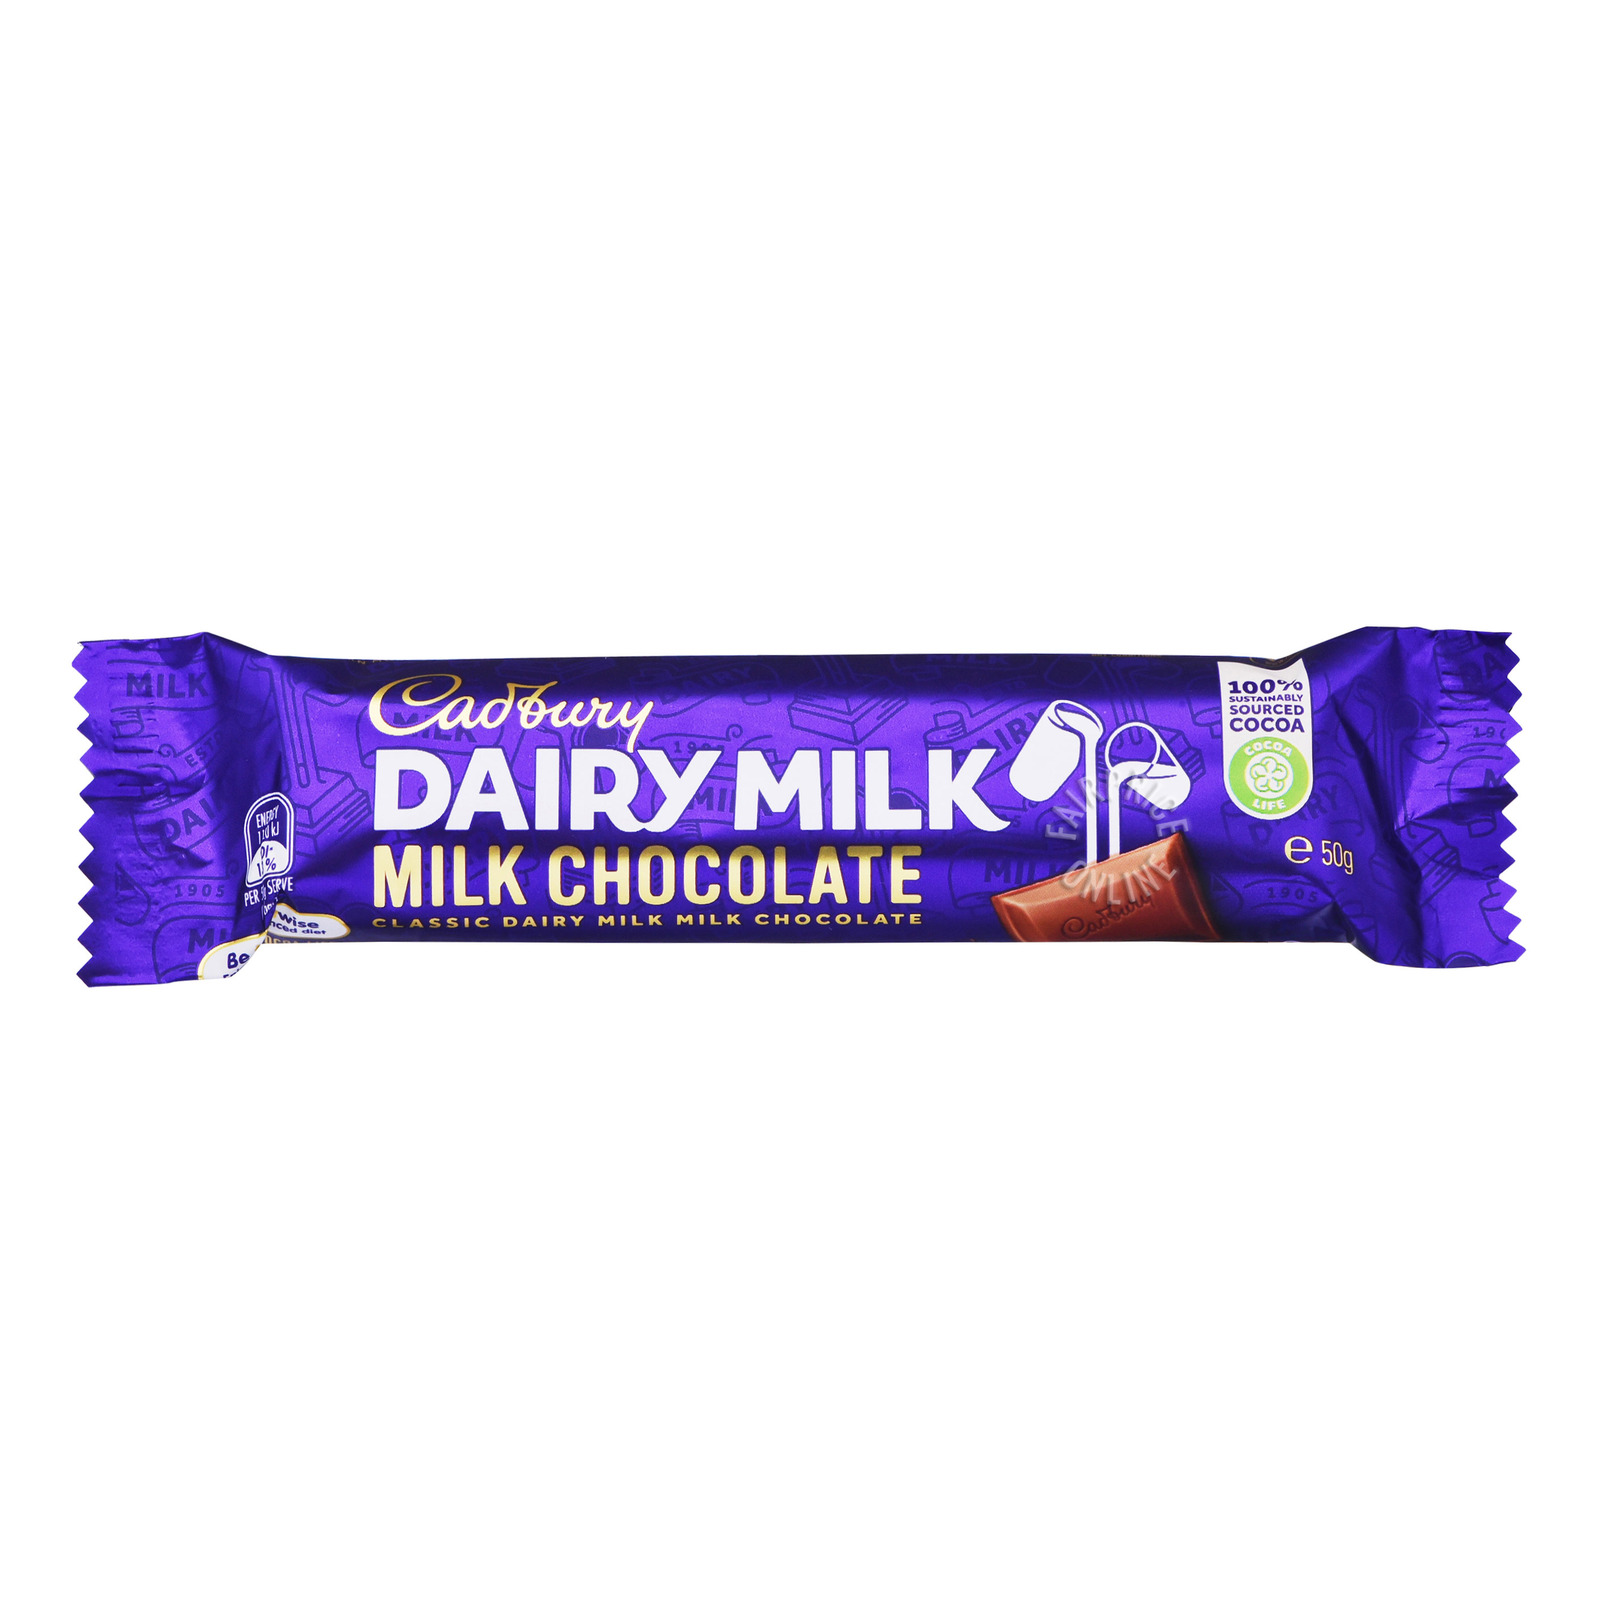 Cadbury Dairy Milk Chocolate Bar - Original